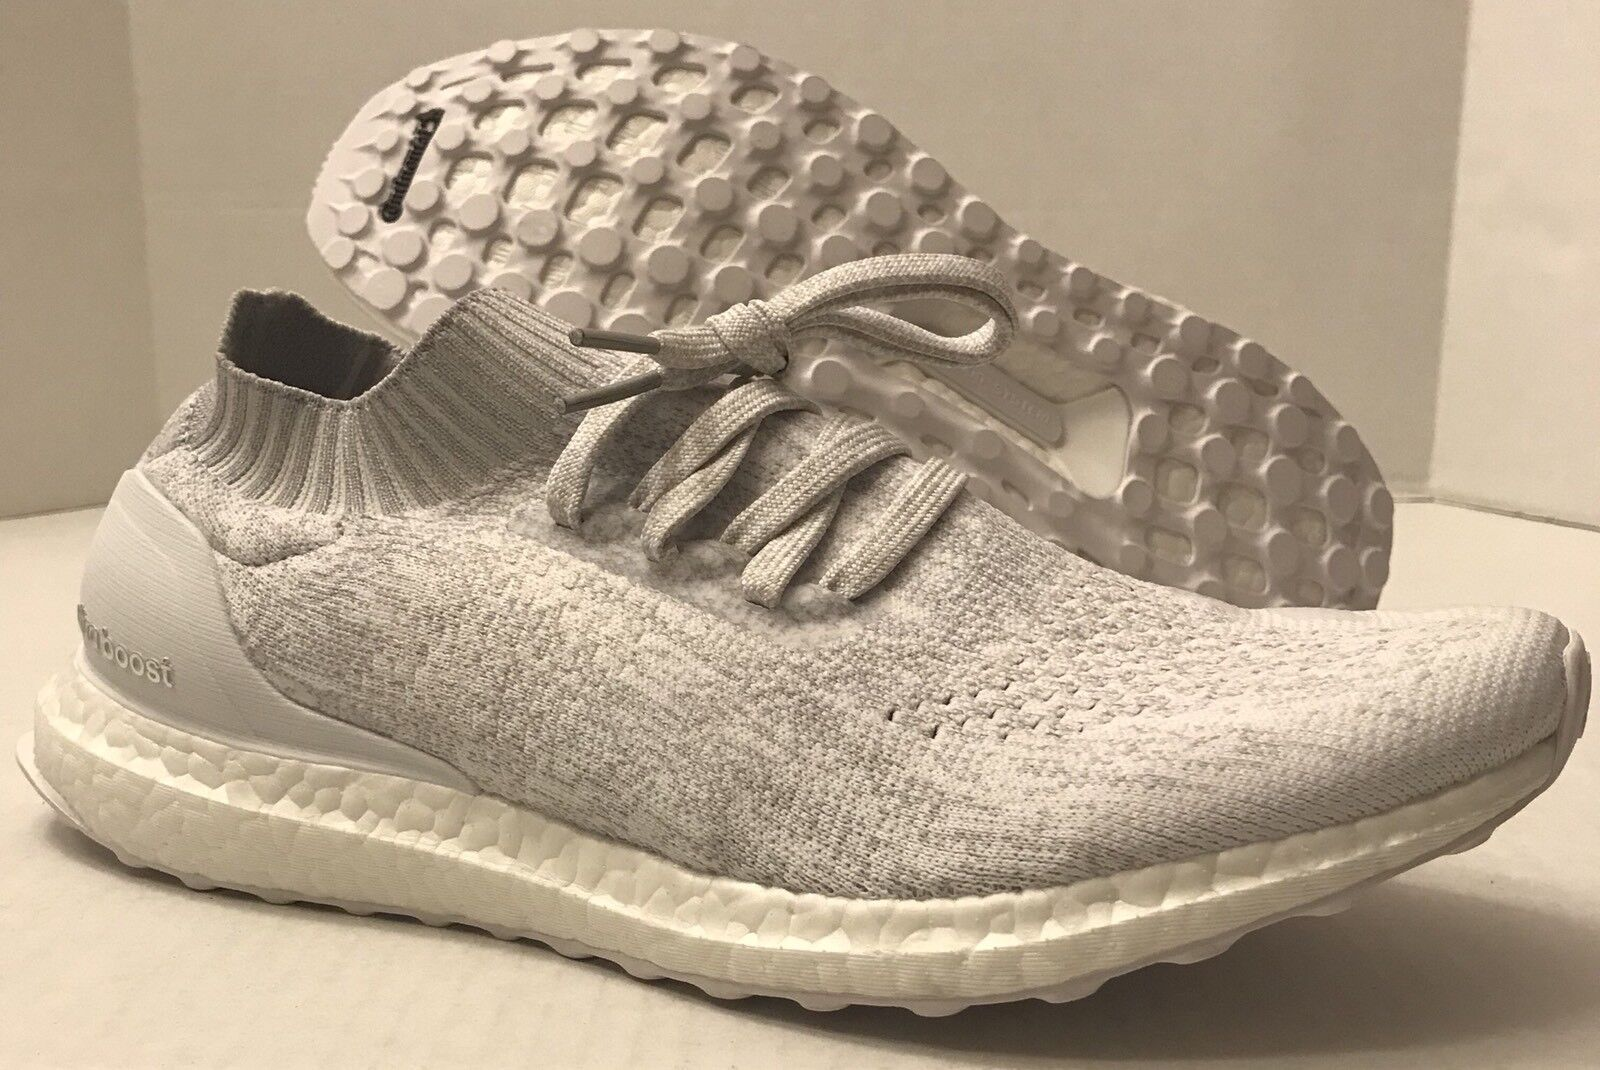 ADIDAS UltraBOOST Uncaged BY2549 White/Grey (MEN'S 11.5) *NO BOX* ultra boost